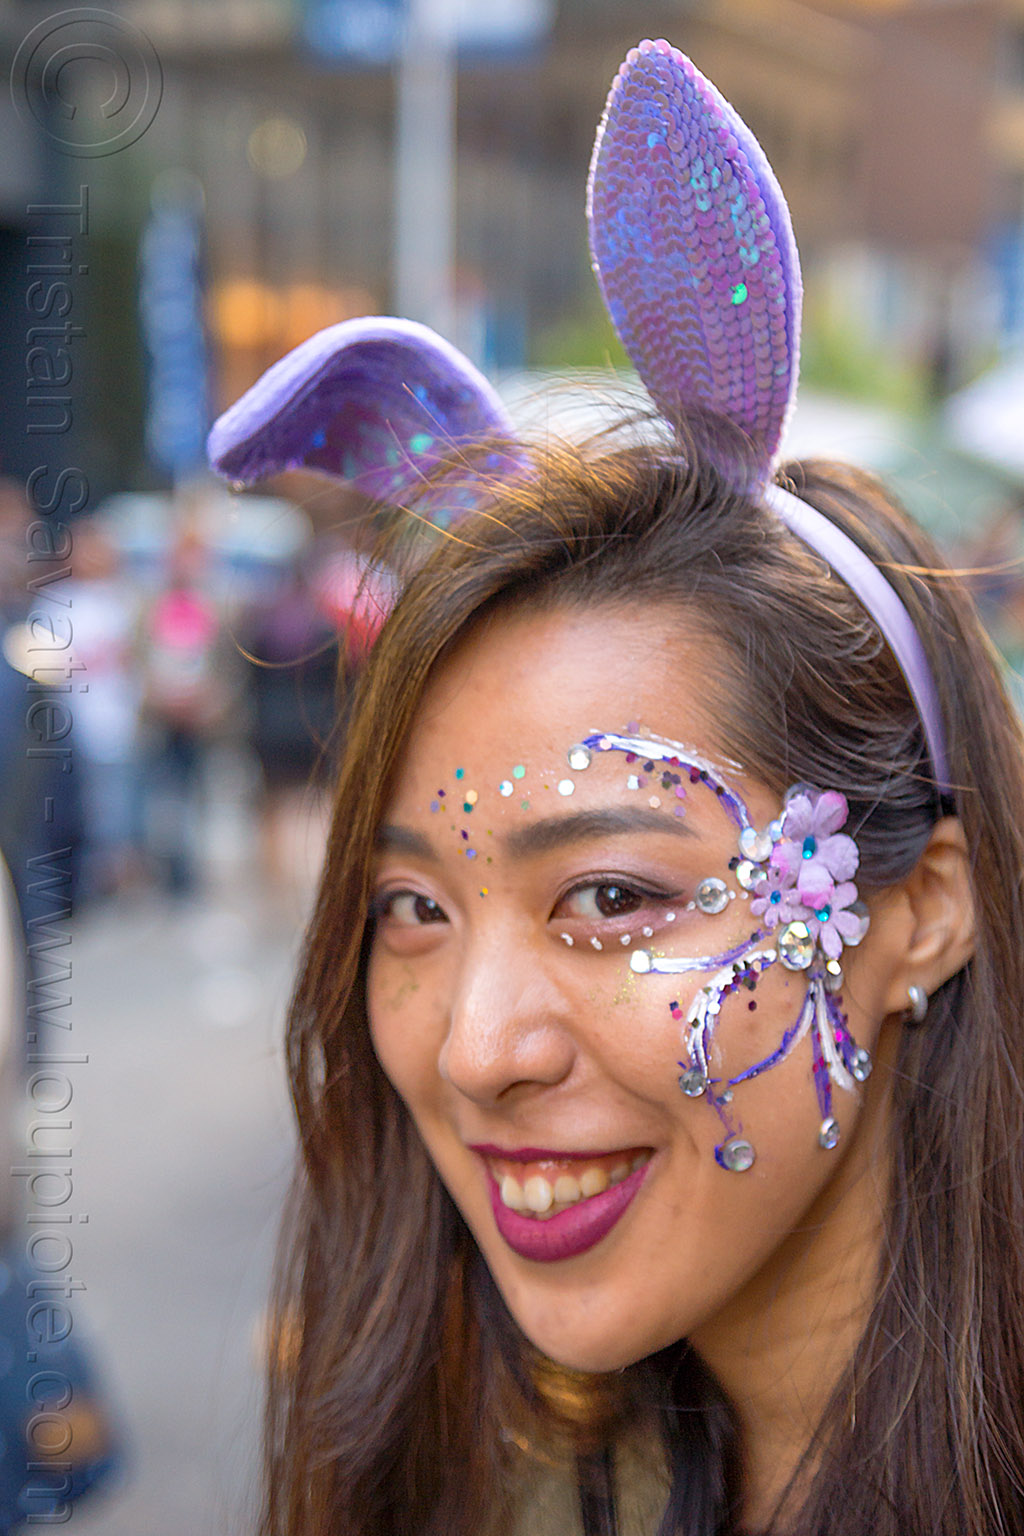 purple bunny ears headband - face paint - how weird street faire (san francisco), bunny ears, face paint, face painting, headband, how weird festival, purple, woman